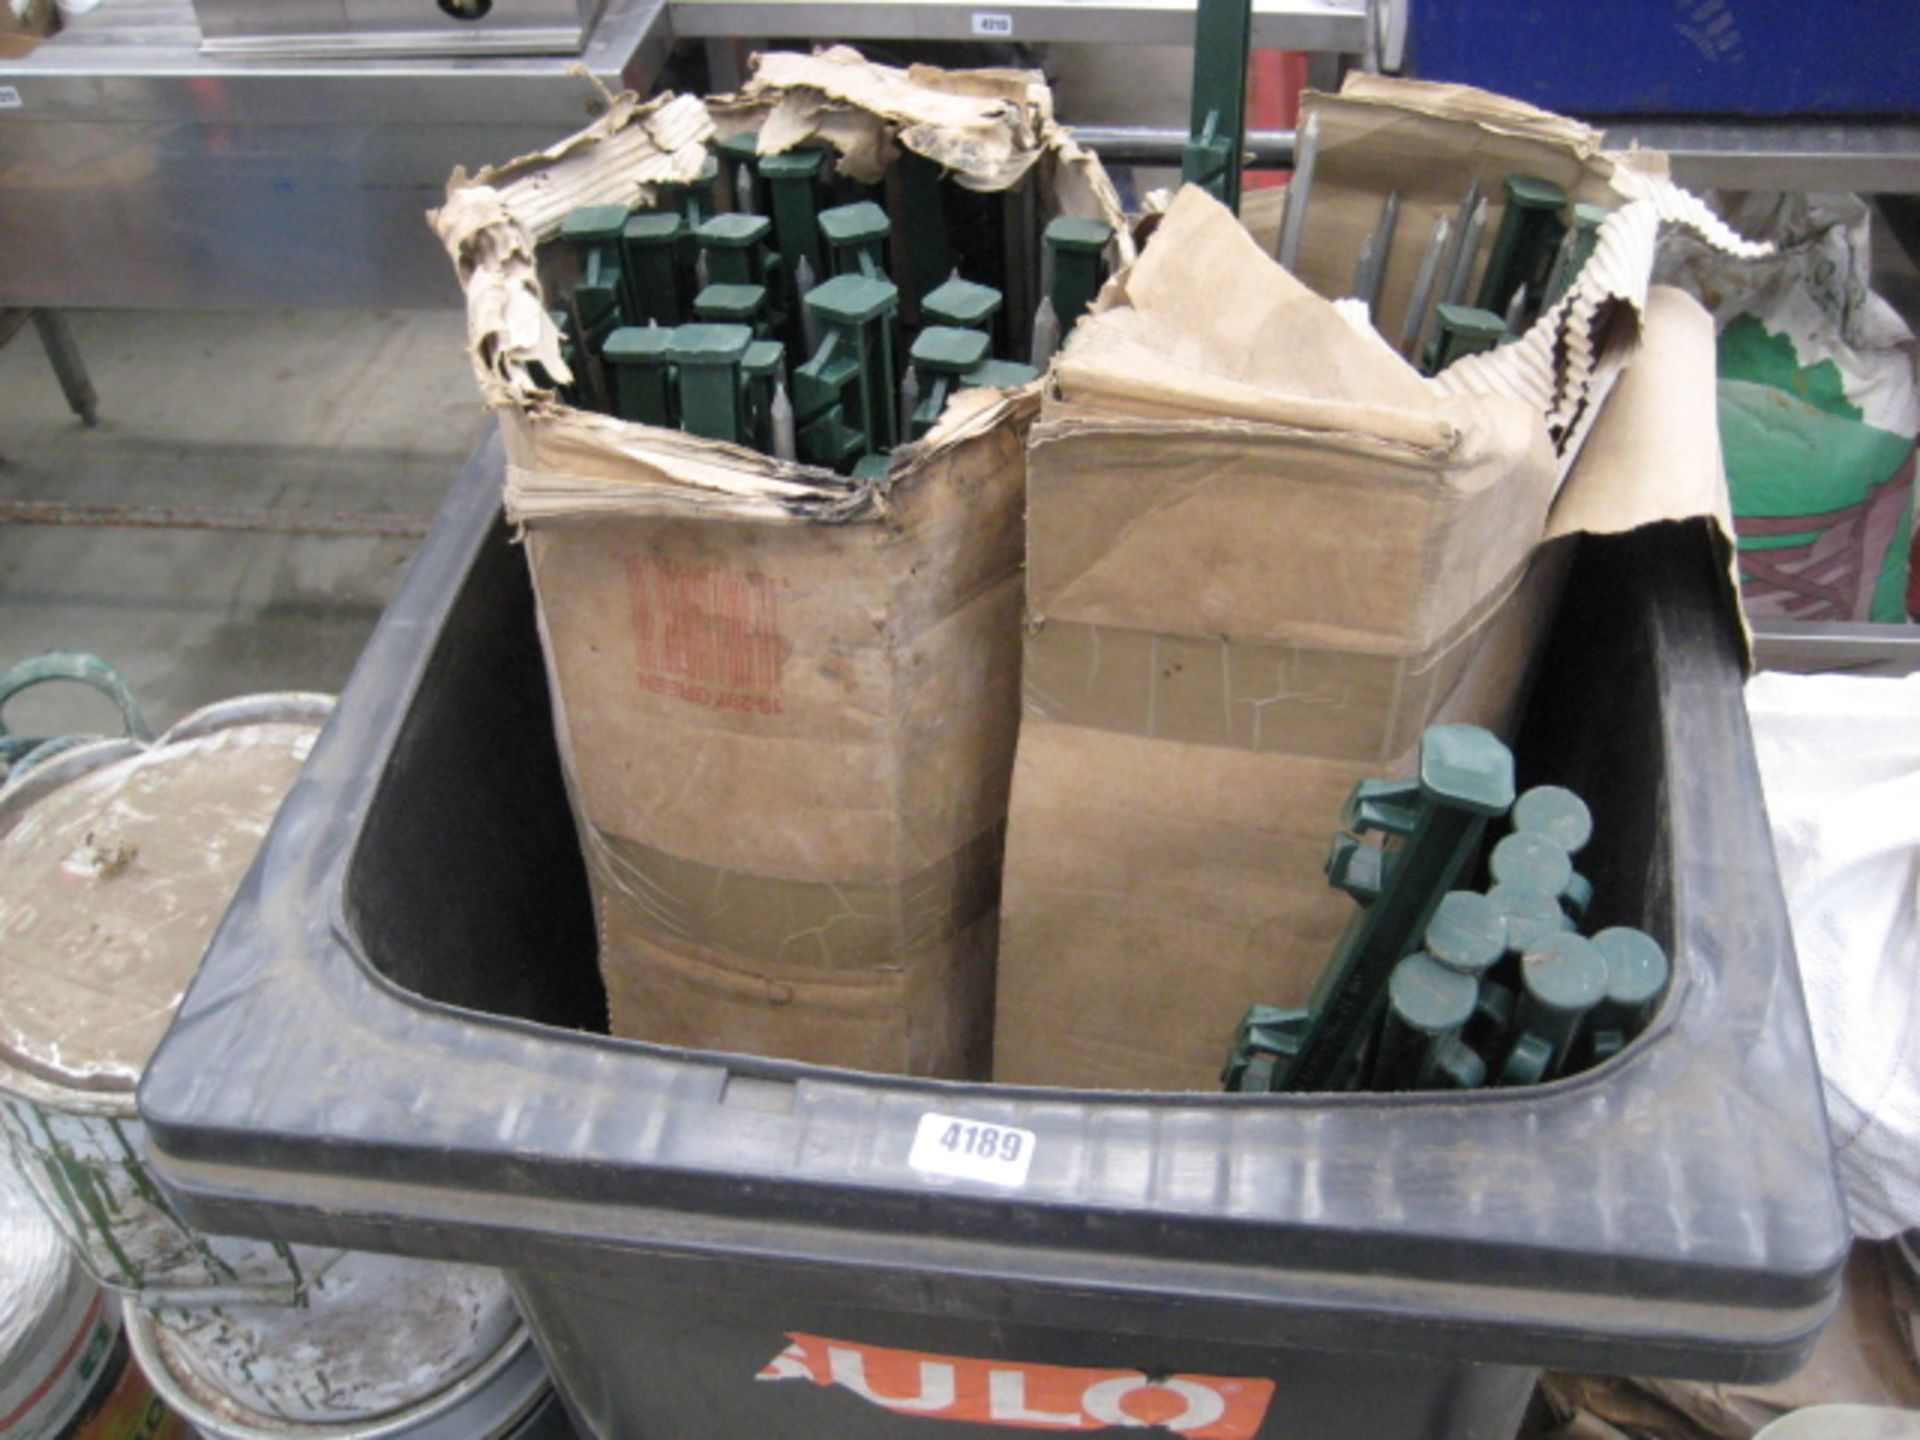 Lot 4189 - Pallet containing a large quantity of electric fencing, post spikes, insulators and wire